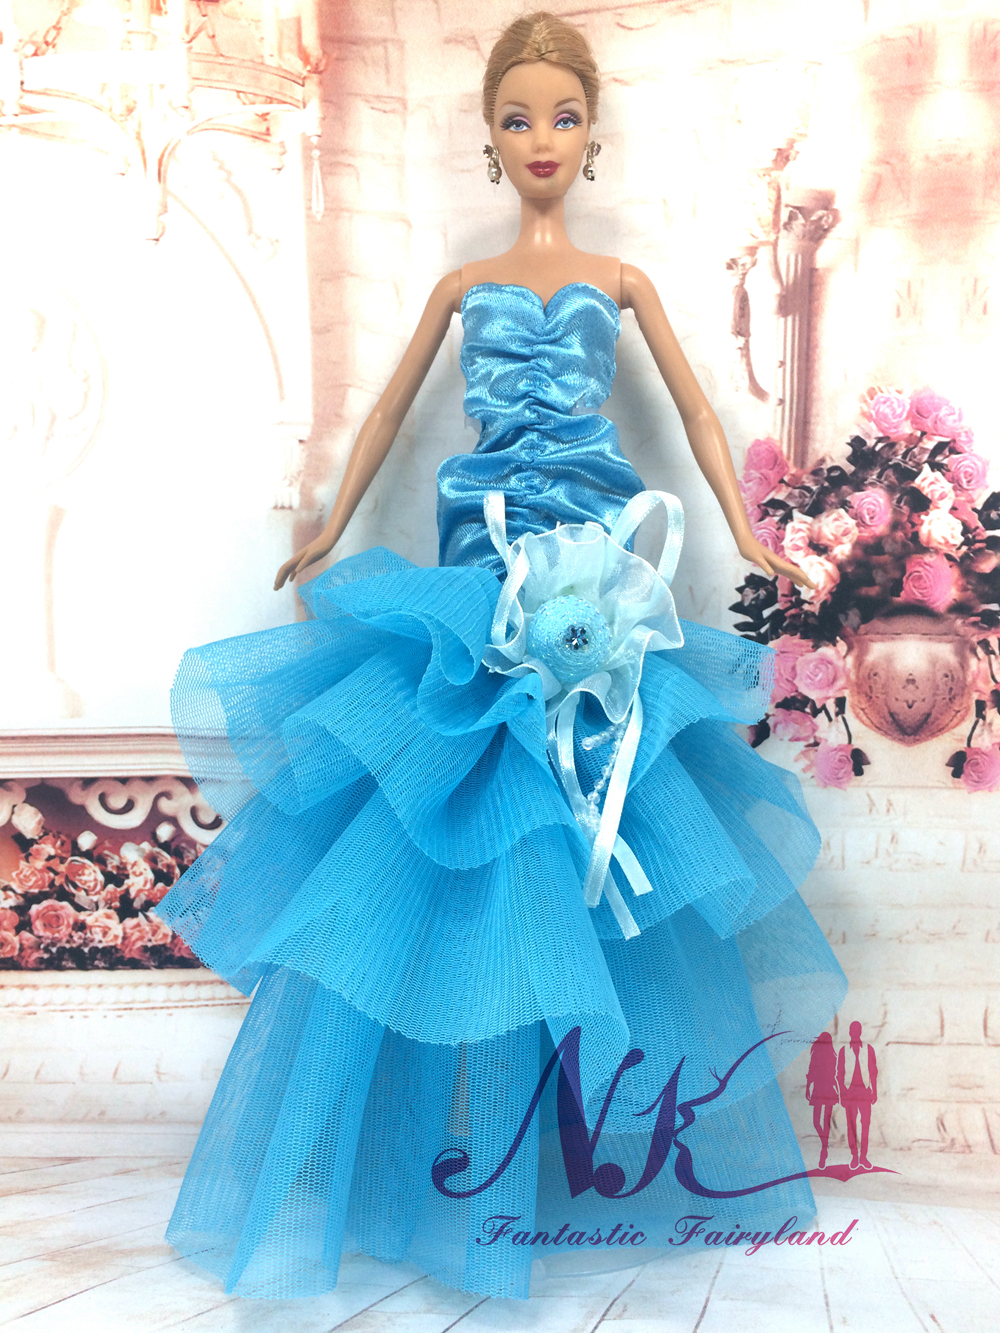 NK One Set  2016 Vogue Design Doll' Handmade Fishtail Gown with Lace Flower For Barbie Doll Finest Present For Woman' 1/6 Doll 005A